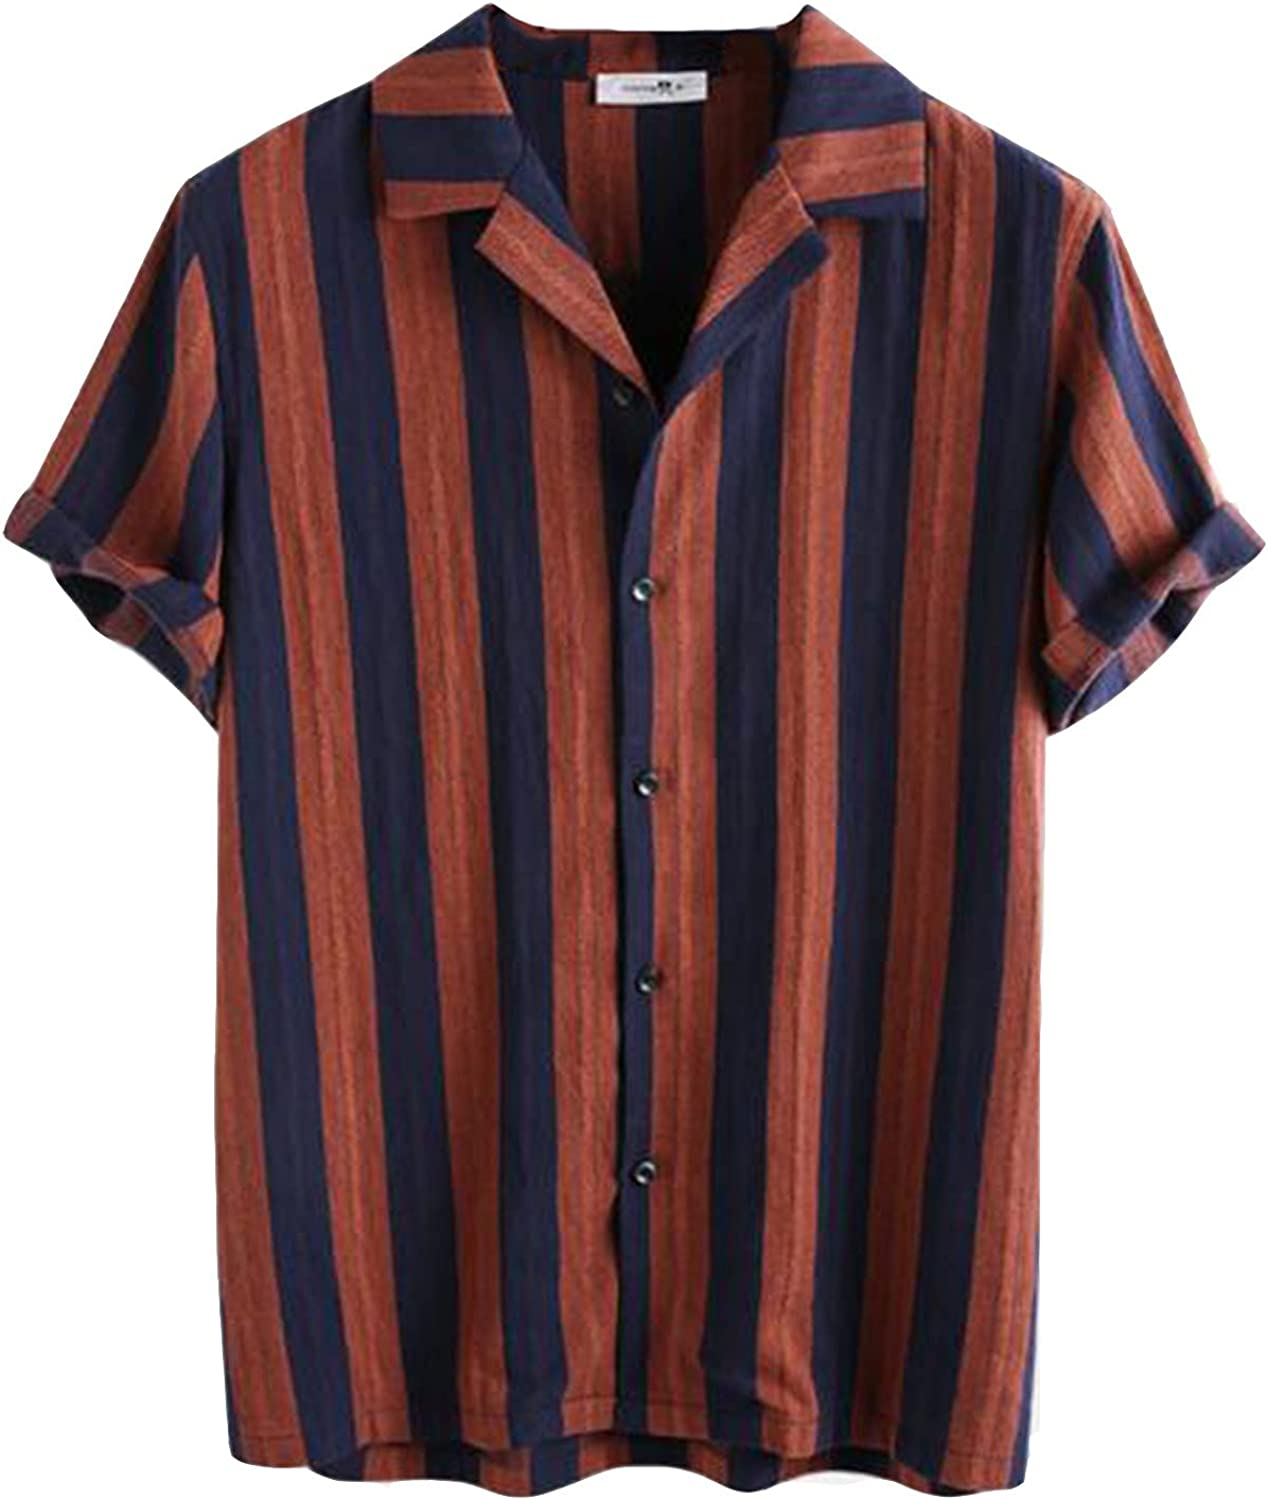 Men's T-Shirt Vintage Stripe Summer Short Sleeve Tops Loose Buttons Casual Tee Blouse with Pocket M-3XL